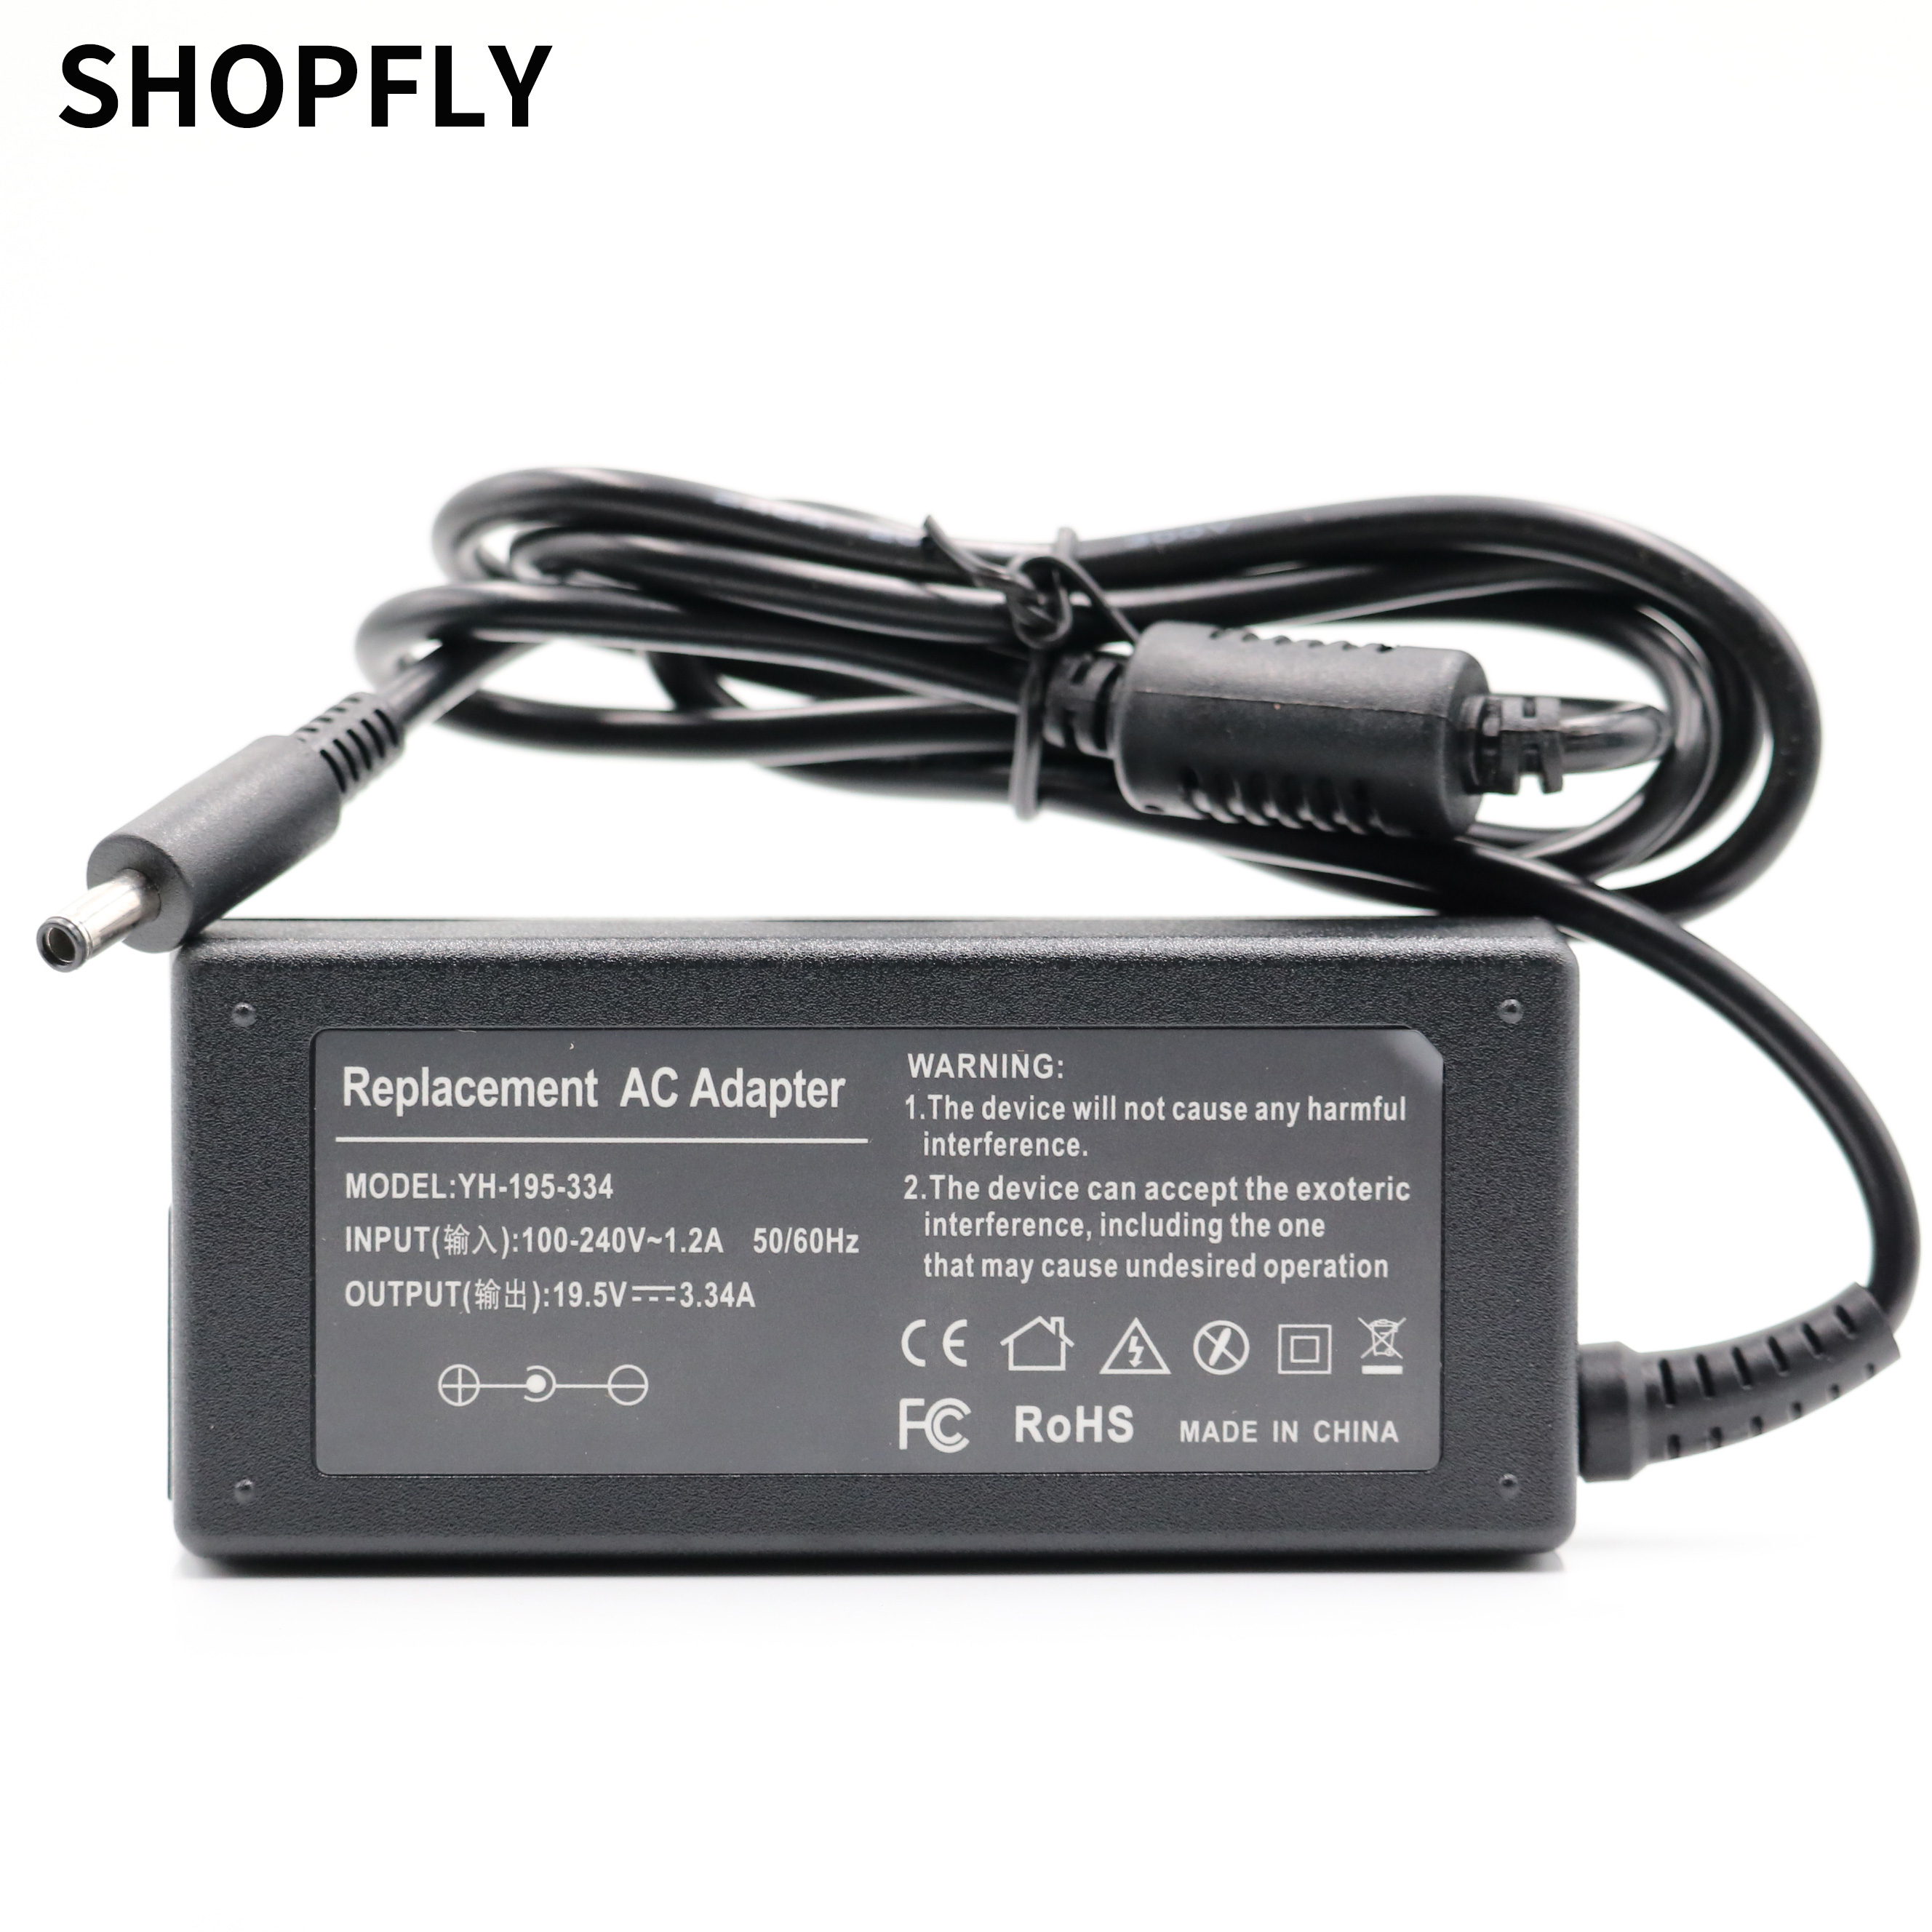 19.5V 3.33A 3.34A Laptop AC Power Adapter For HP Charger 246 G3 246 G4 248 G1 250 G2 250 G3 250 G4 255 G2 255 G3 255 G4 256 G2|Laptop Adapter| |  - title=